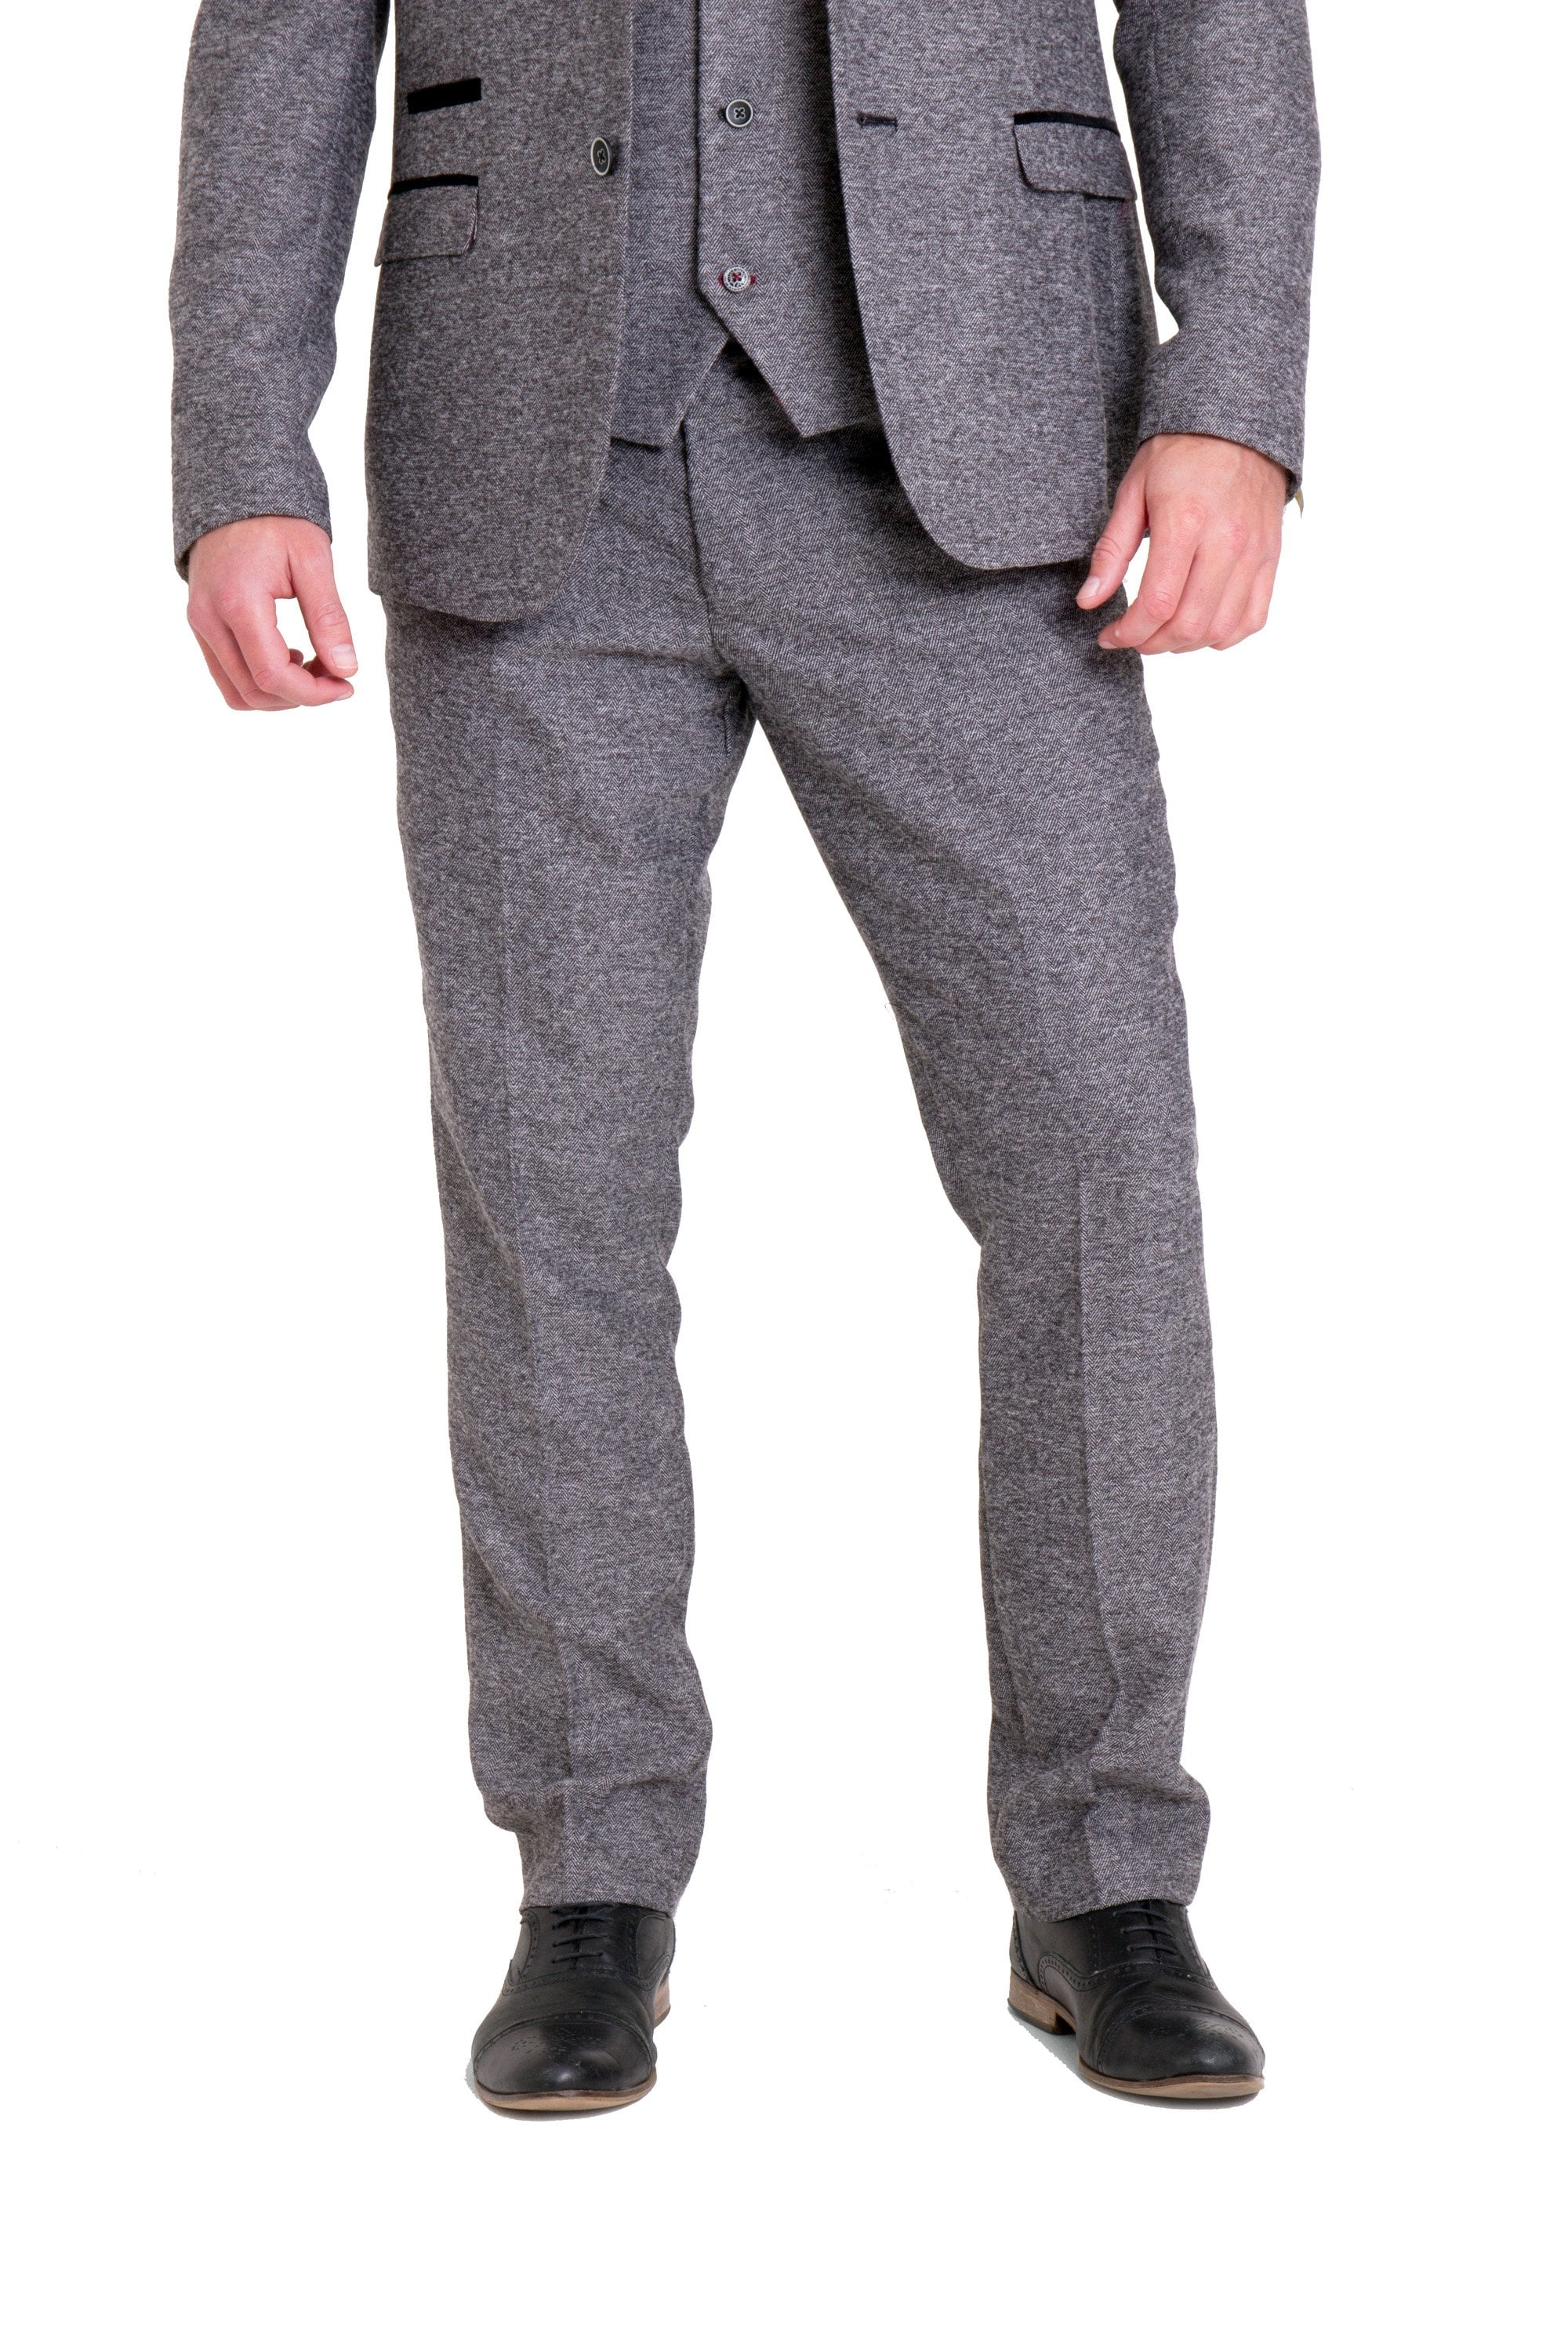 Marc Darcy Victor Grey Tweed Trousers e8ae2a0087f4